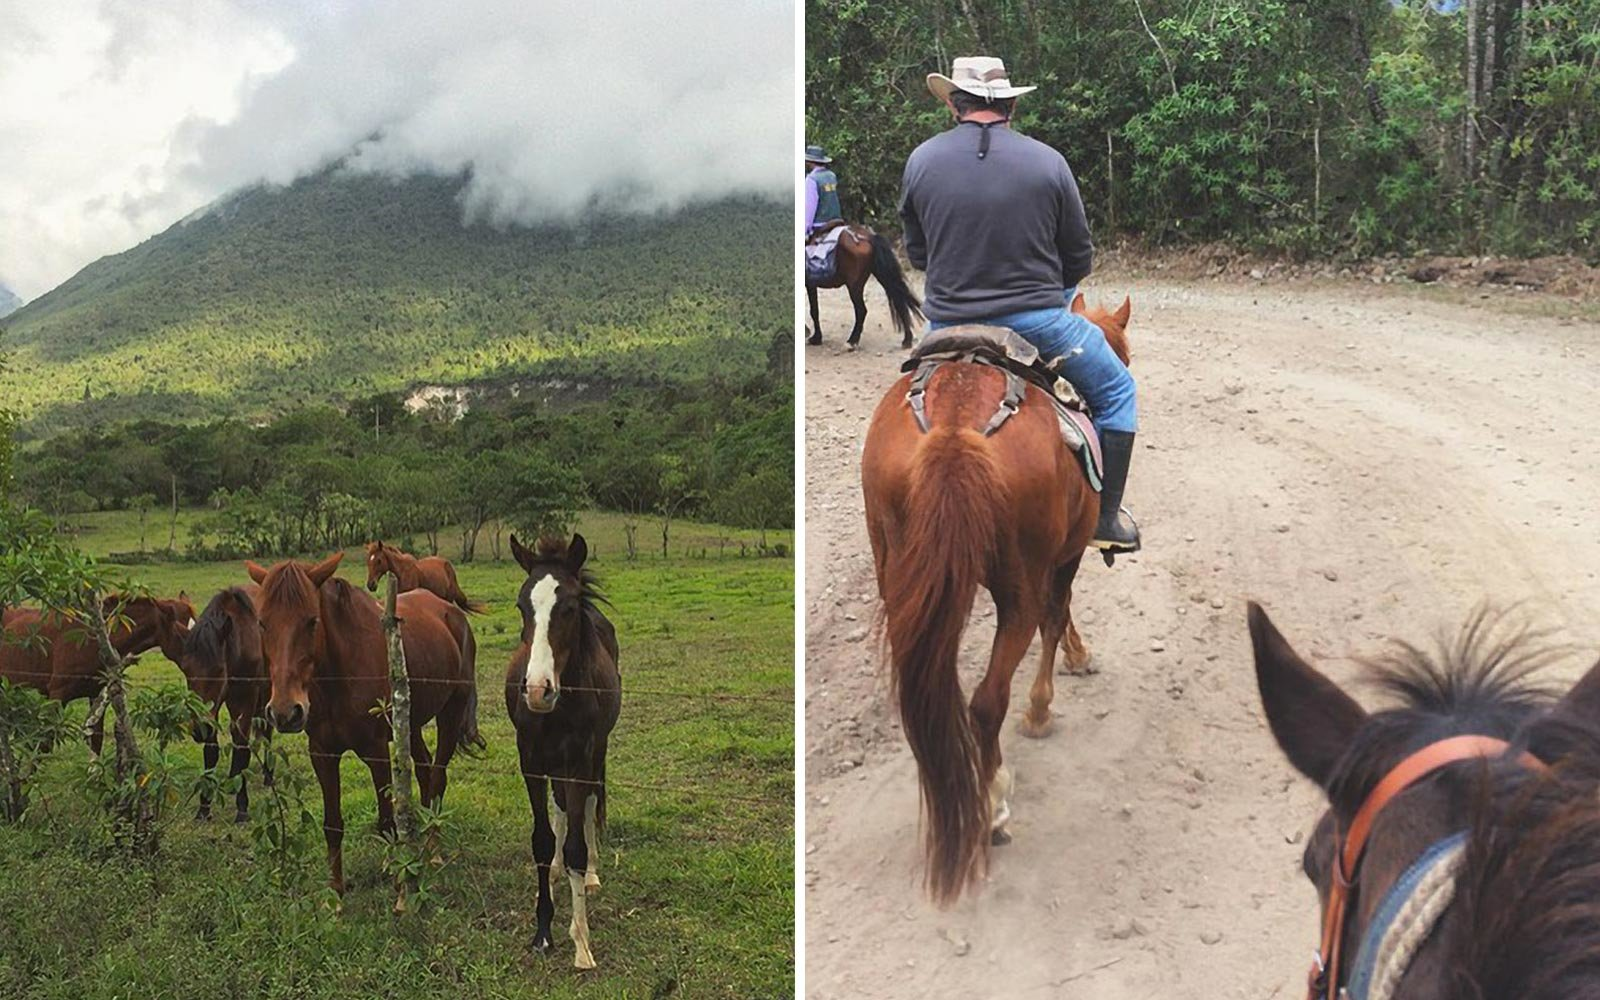 The Horseback Ride That Takes You Inside a Volcano